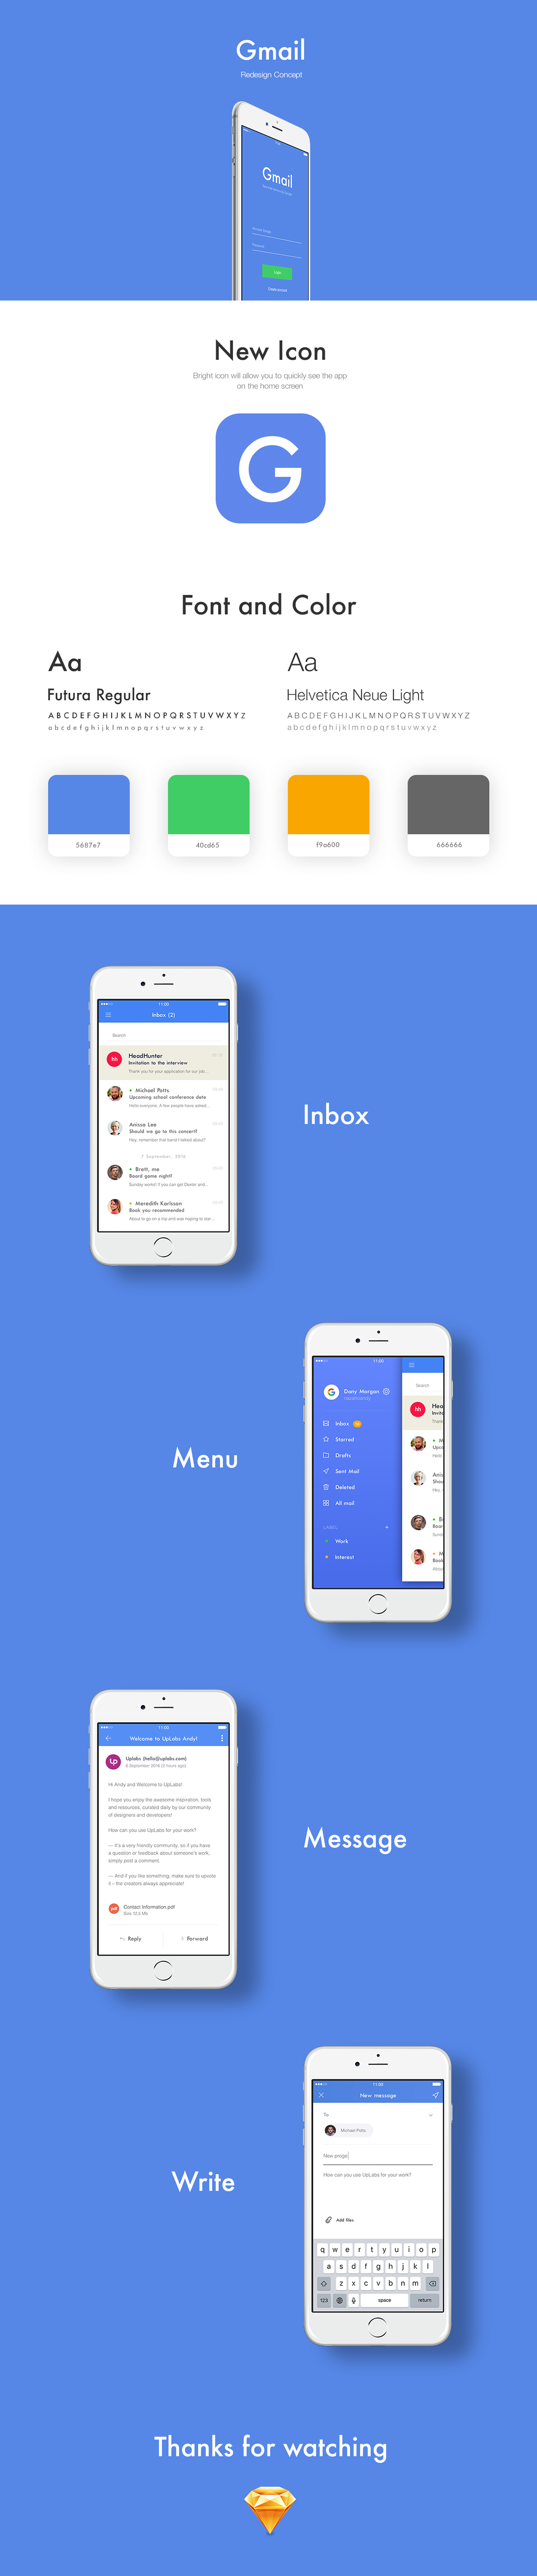 Gmail Redesign Concept - Sketch on Behance